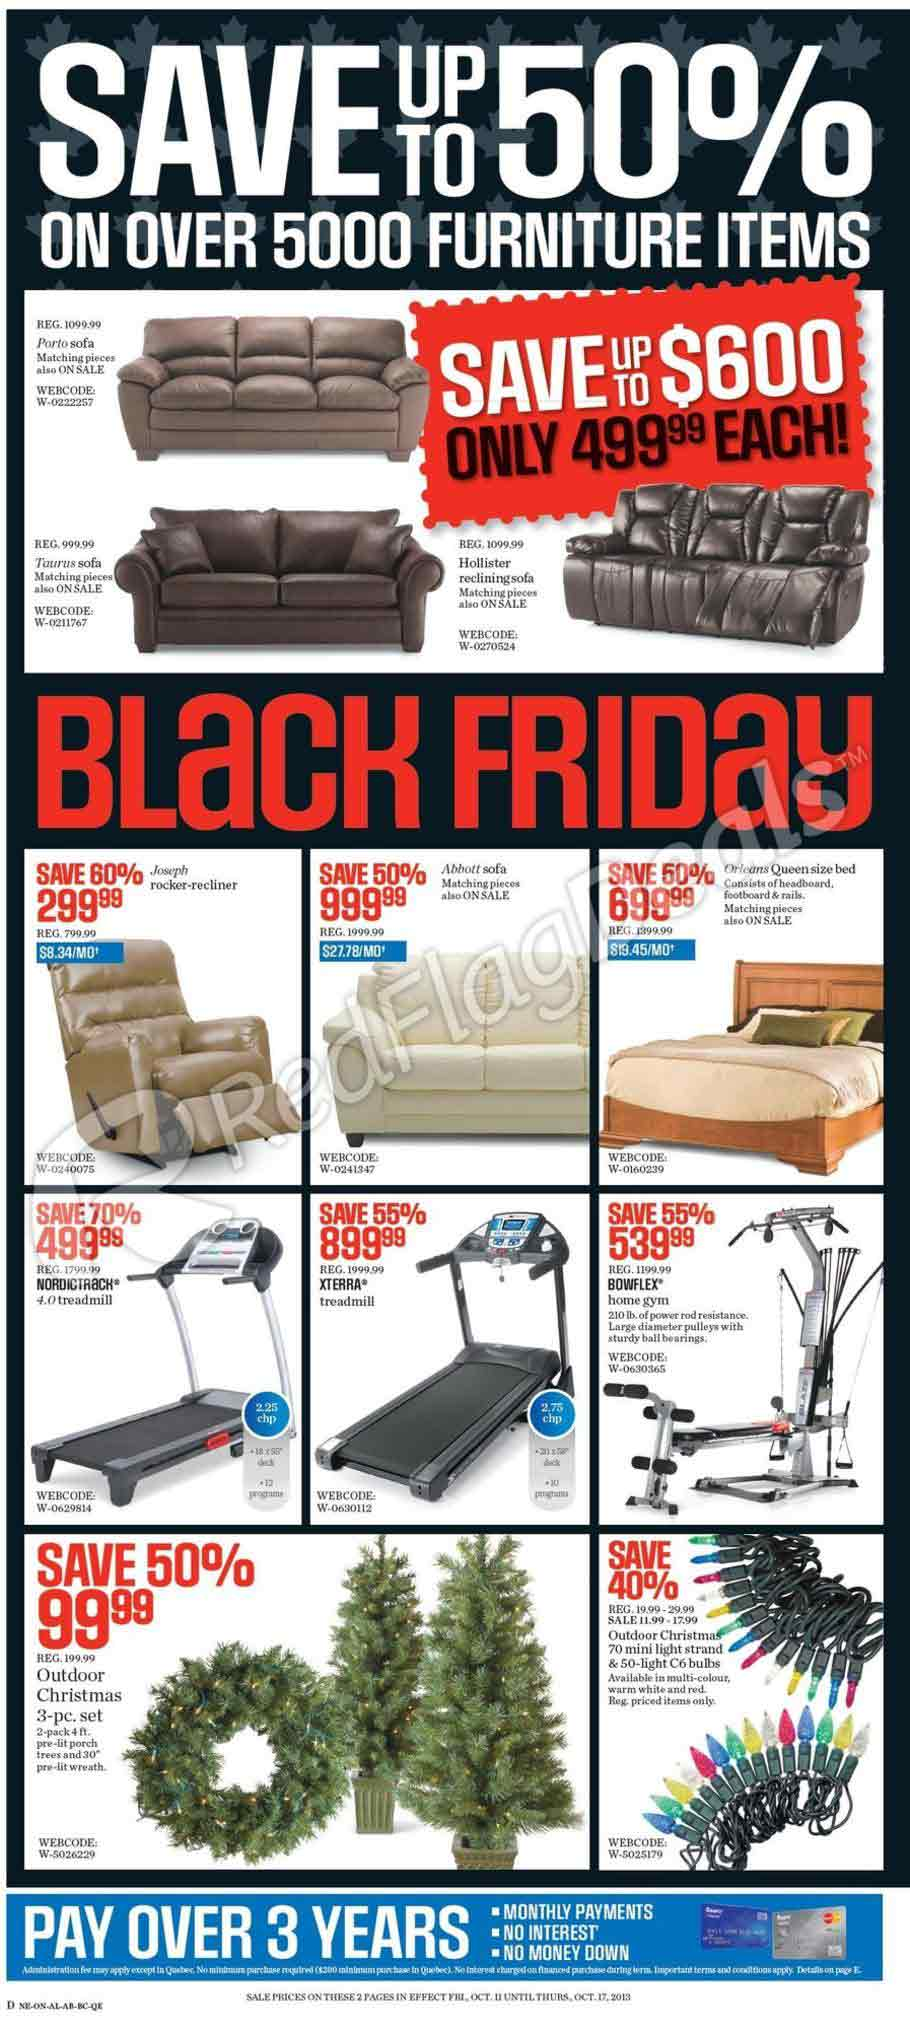 Sears Black Friday 2013 Ad Find The Best Sears Black